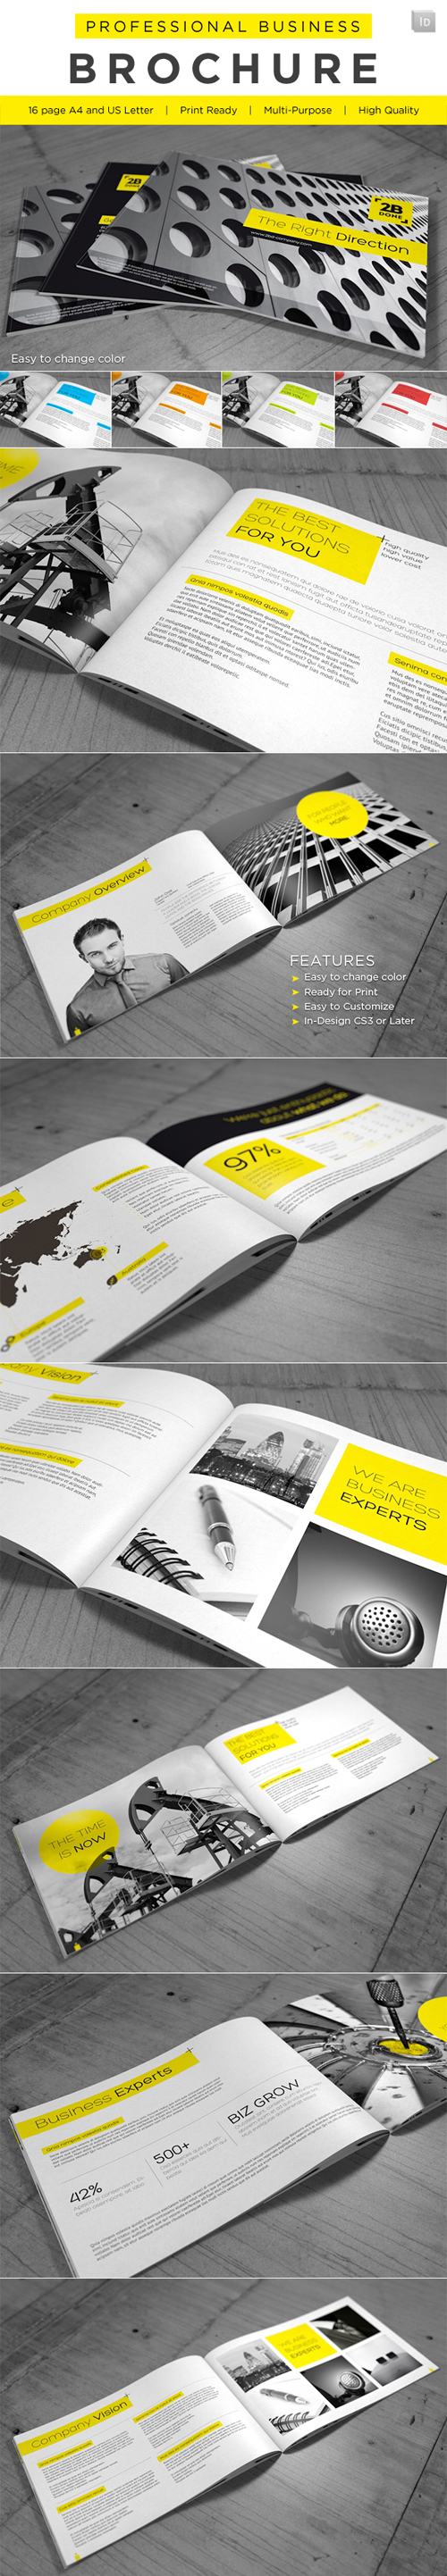 Professional Brochure Designs | Design | Graphic Design Junction